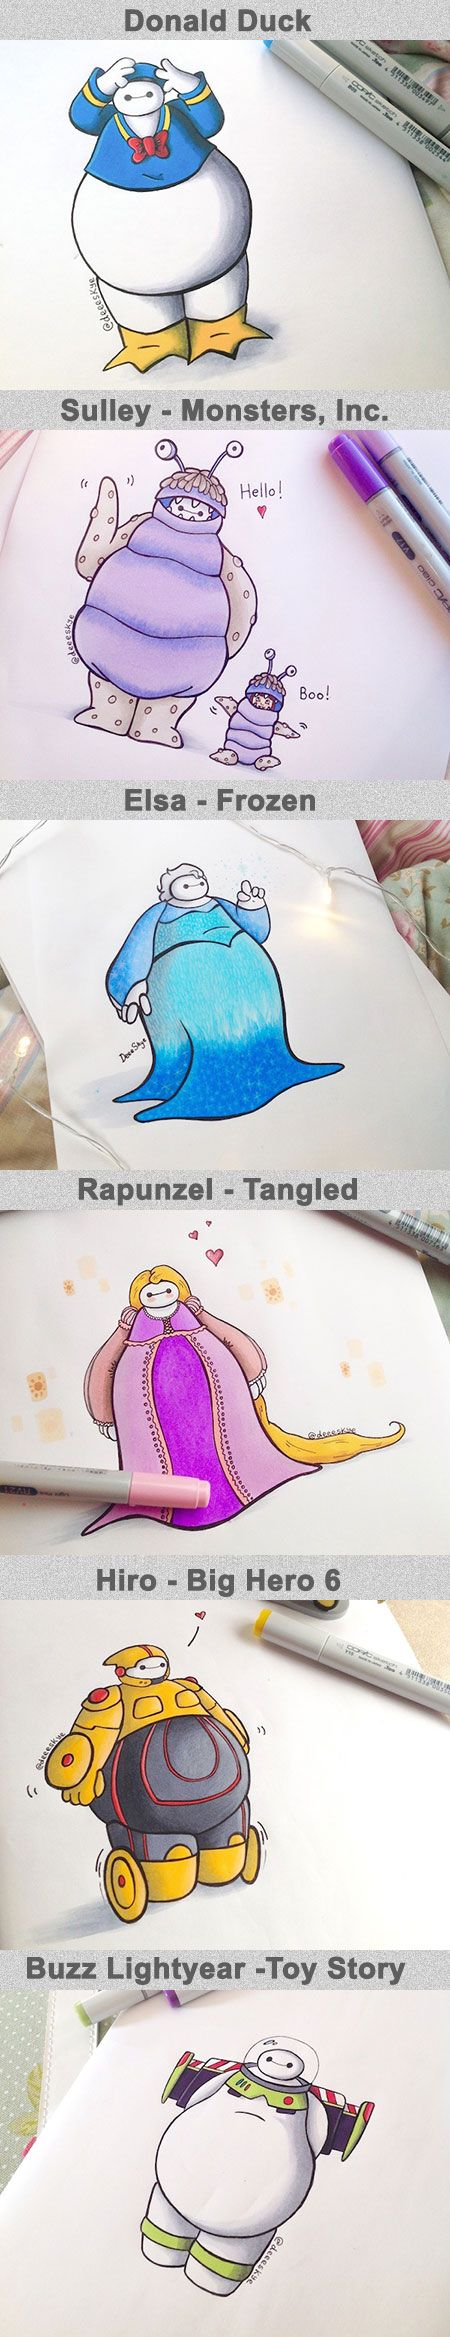 Scotlandbased Selftaught Artist Demetria Skye Has Created An - Baymax imagined famous disney characters